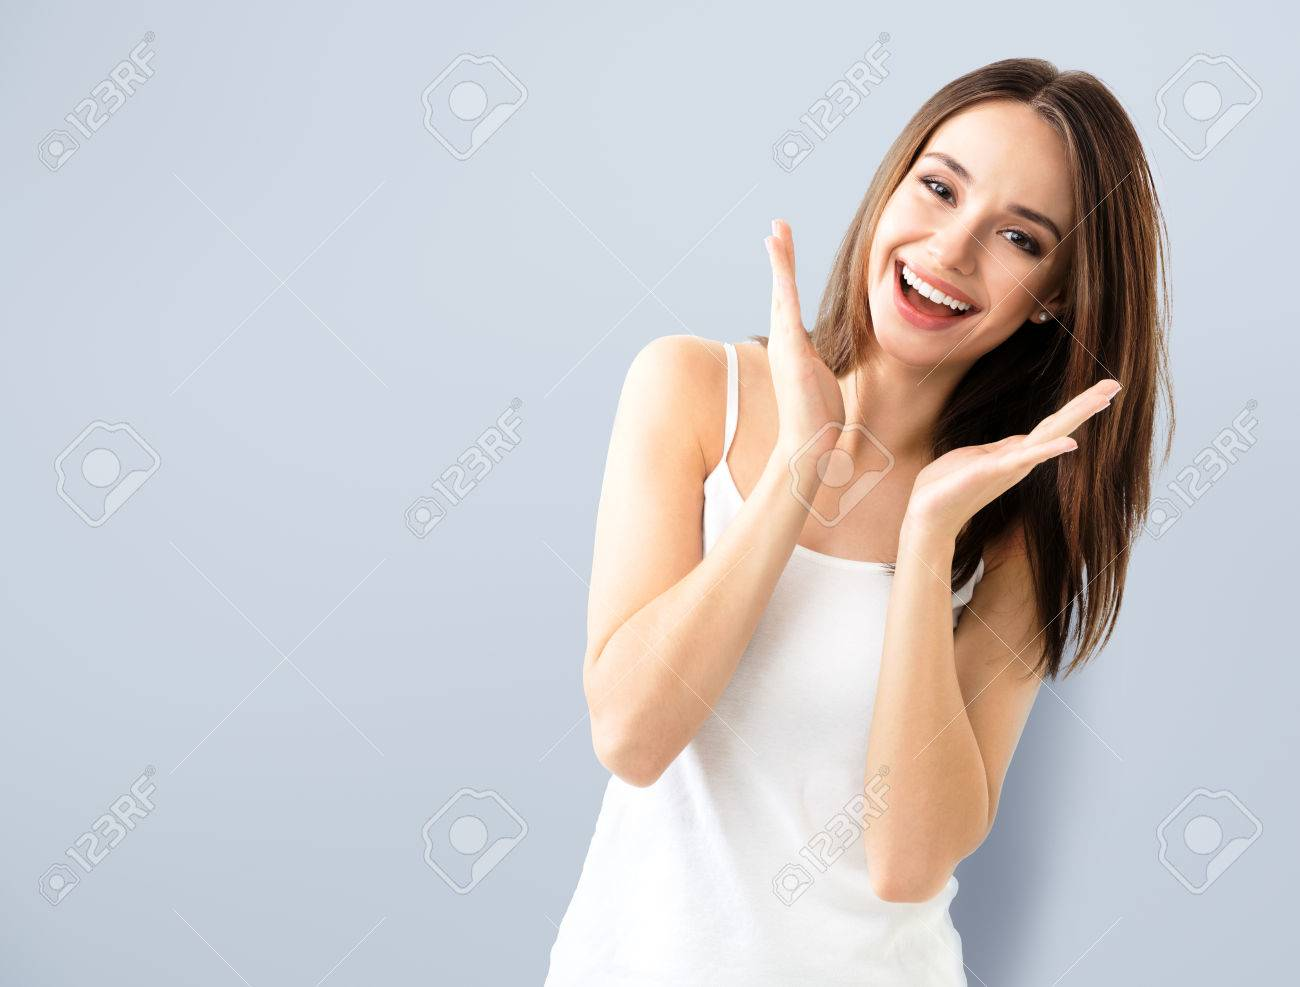 young woman showing smile, in casual smart clothing, with copyspace area for text or slogan - 59131375